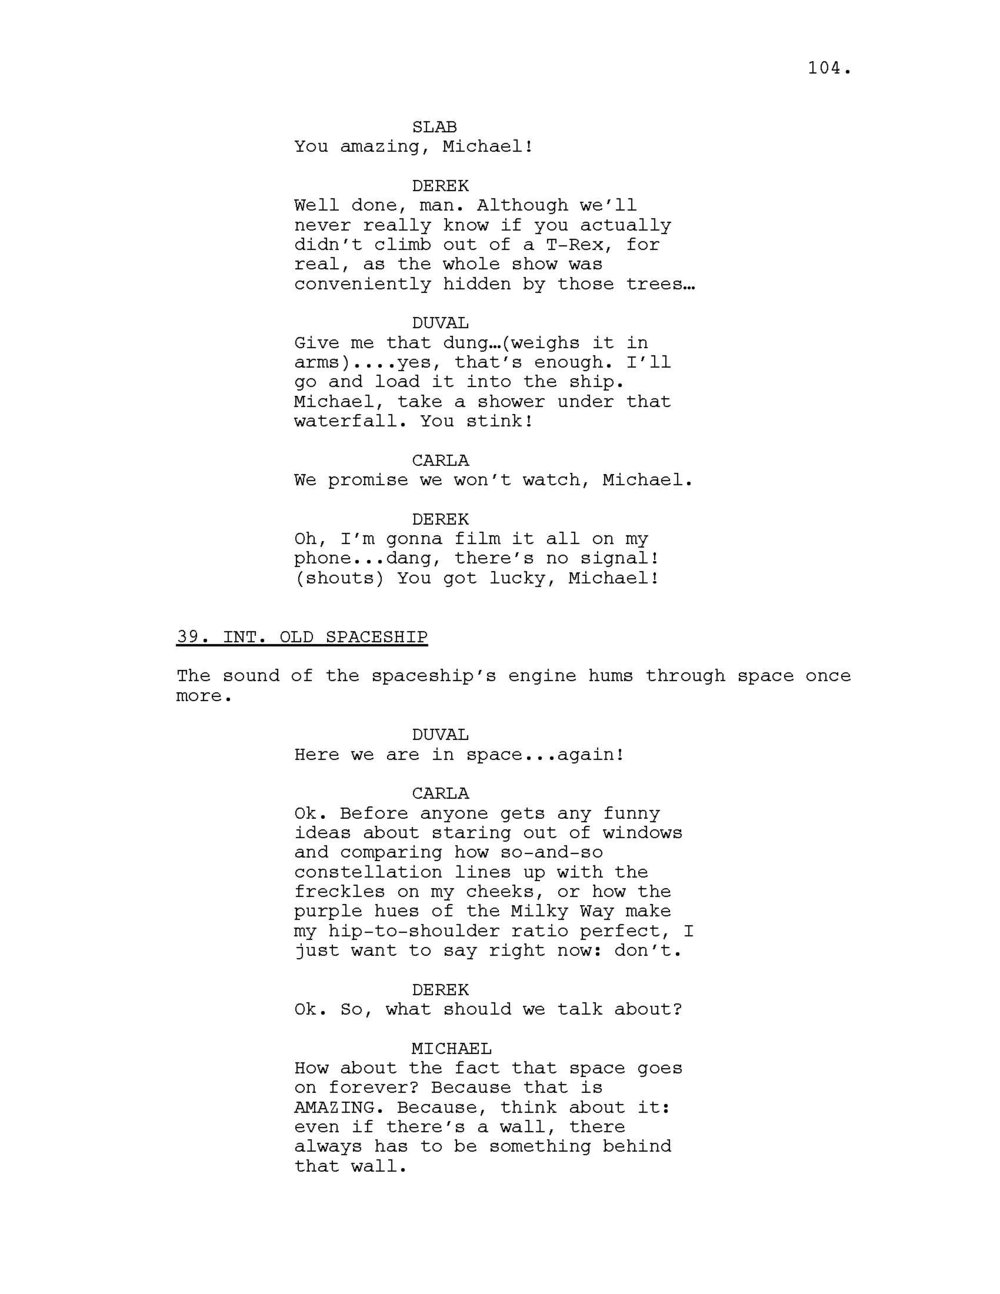 INVISIBLE WORLD SCRIPT_Page_105.jpg